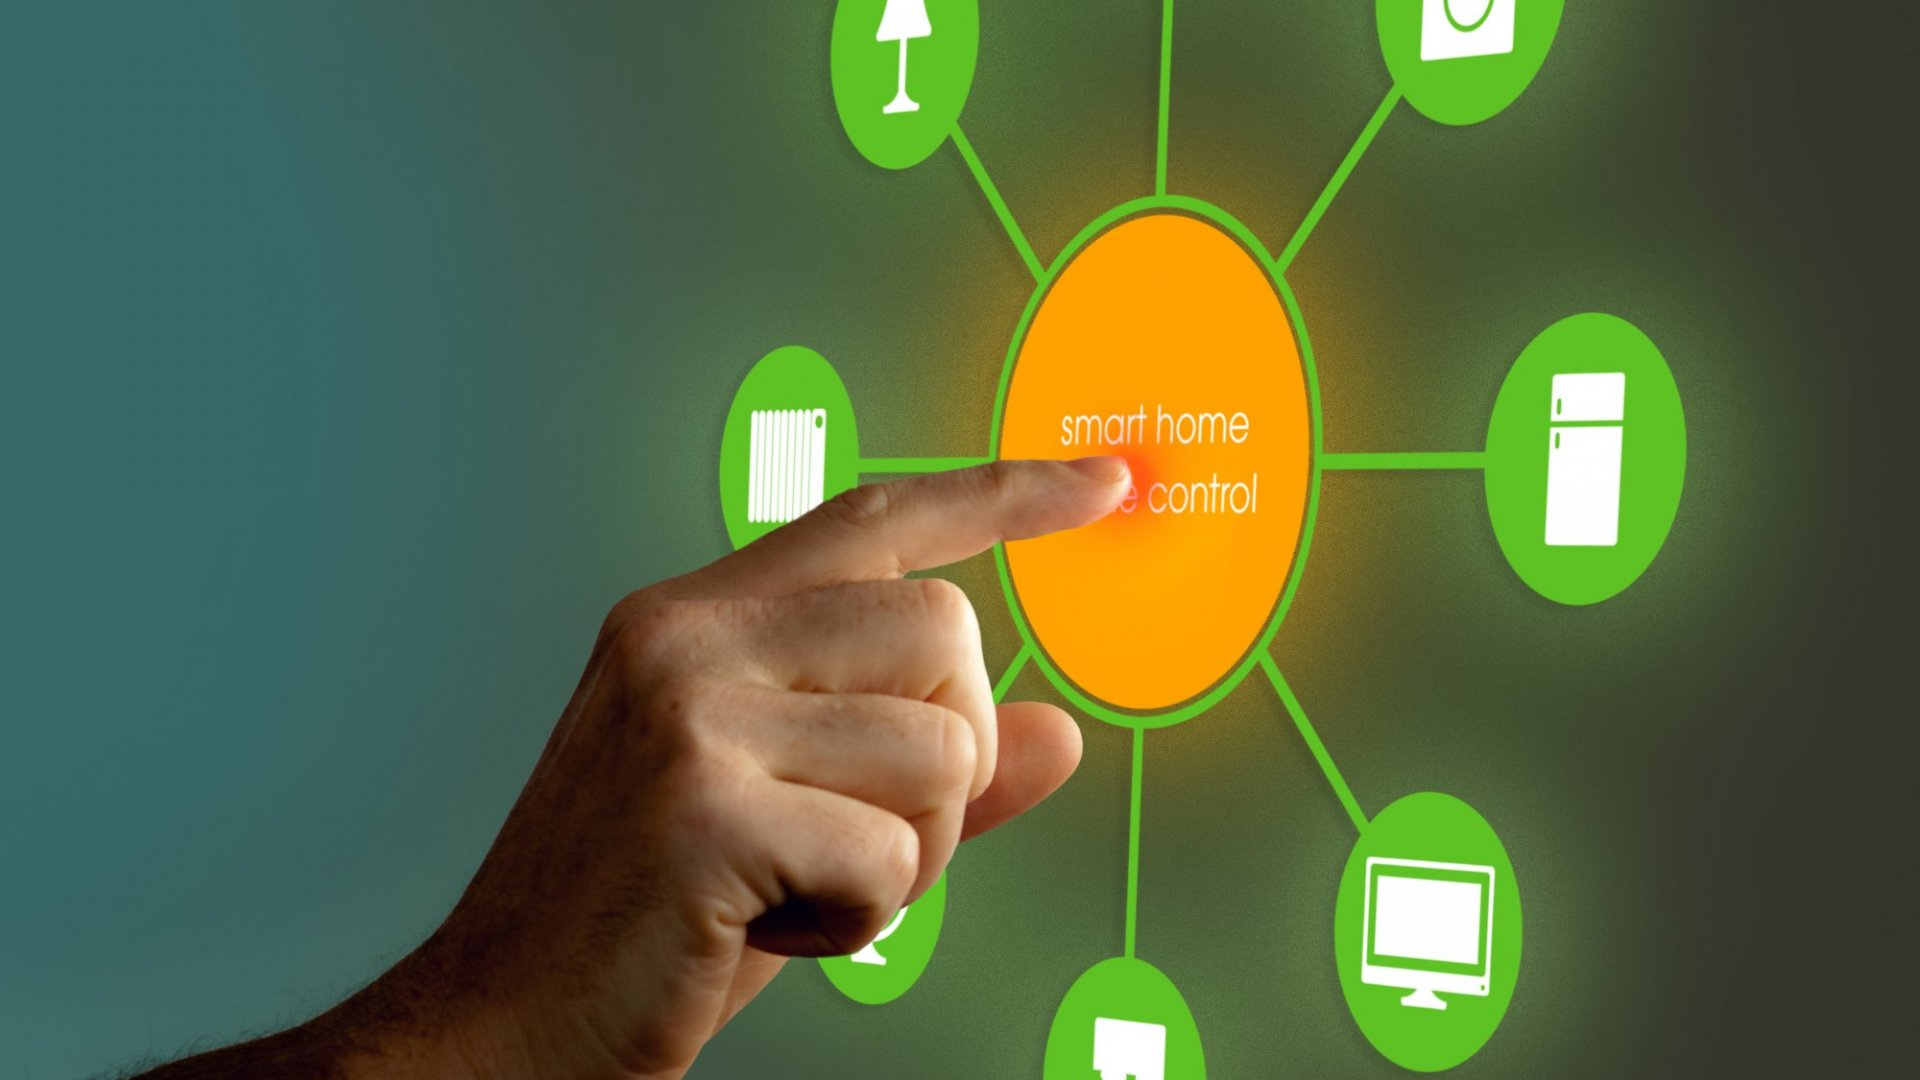 5 Smart Home Startups That Can Save (Not Cost) You Money